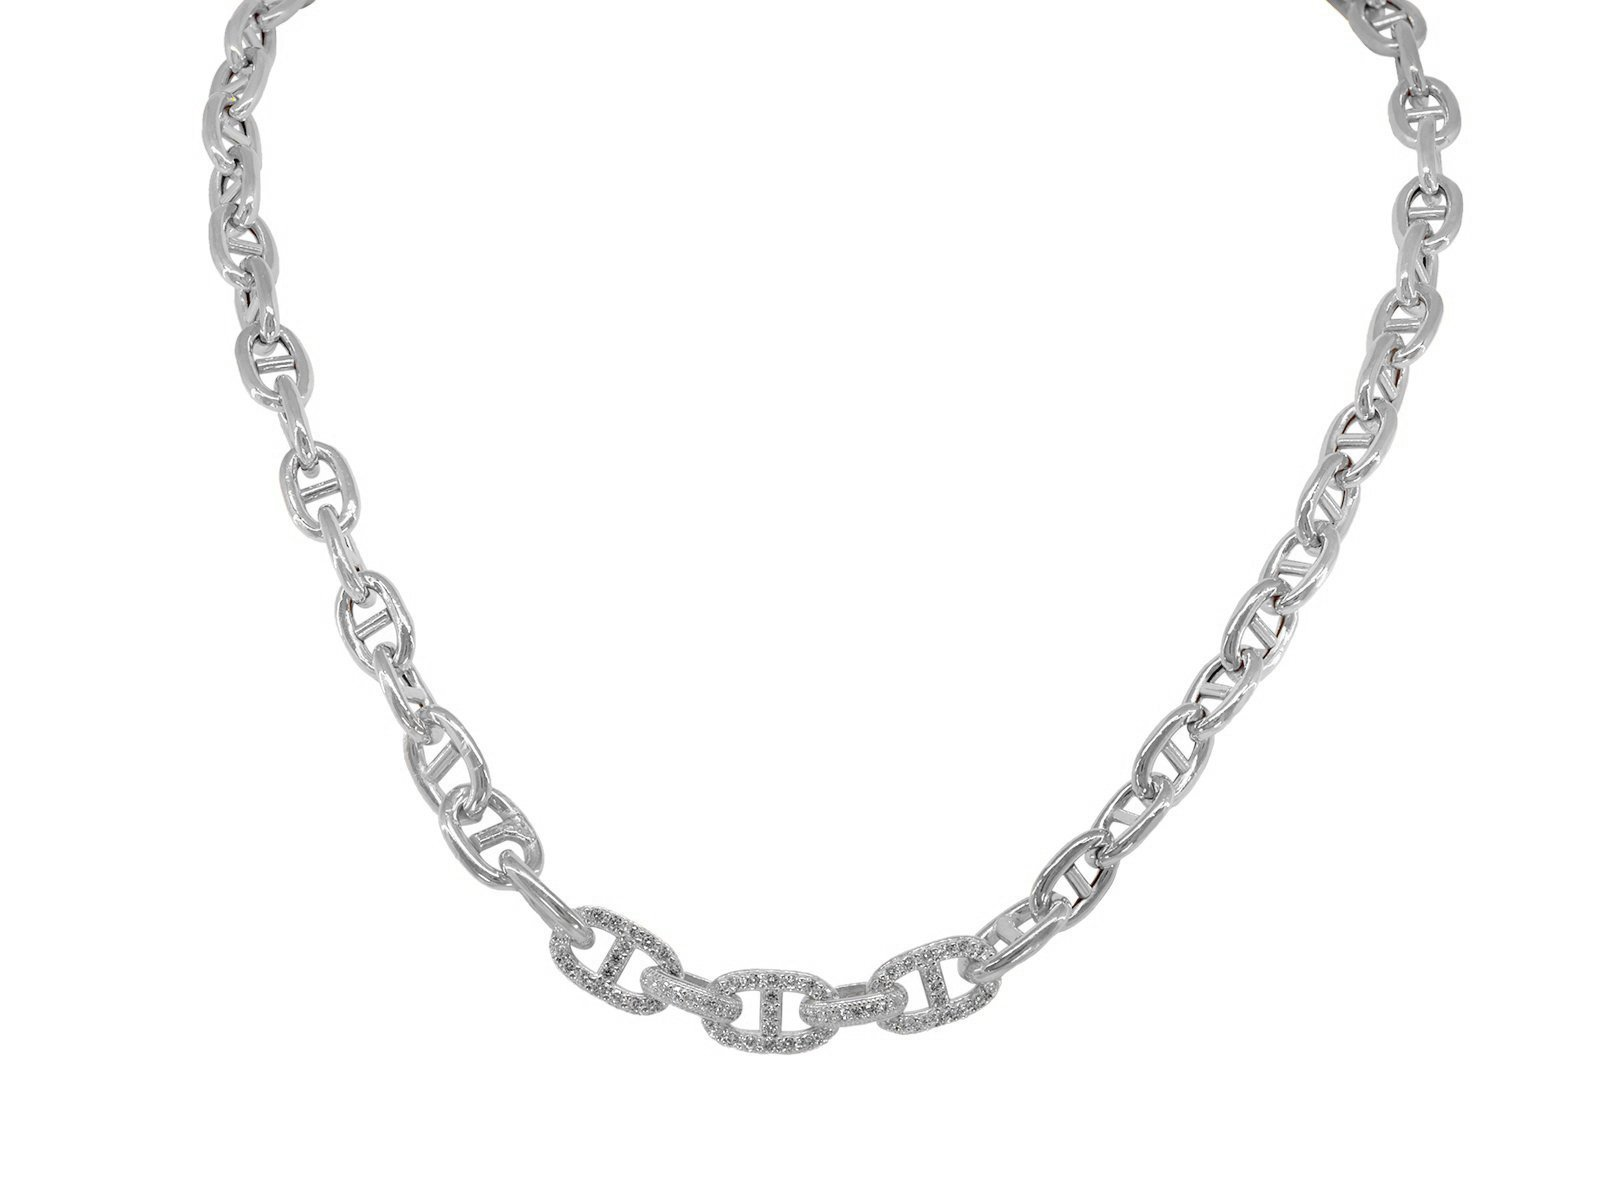 Fronay Co .925 Sterling Silver Designer CZ Marine Links Rhodium Plated Necklace, Length 17''